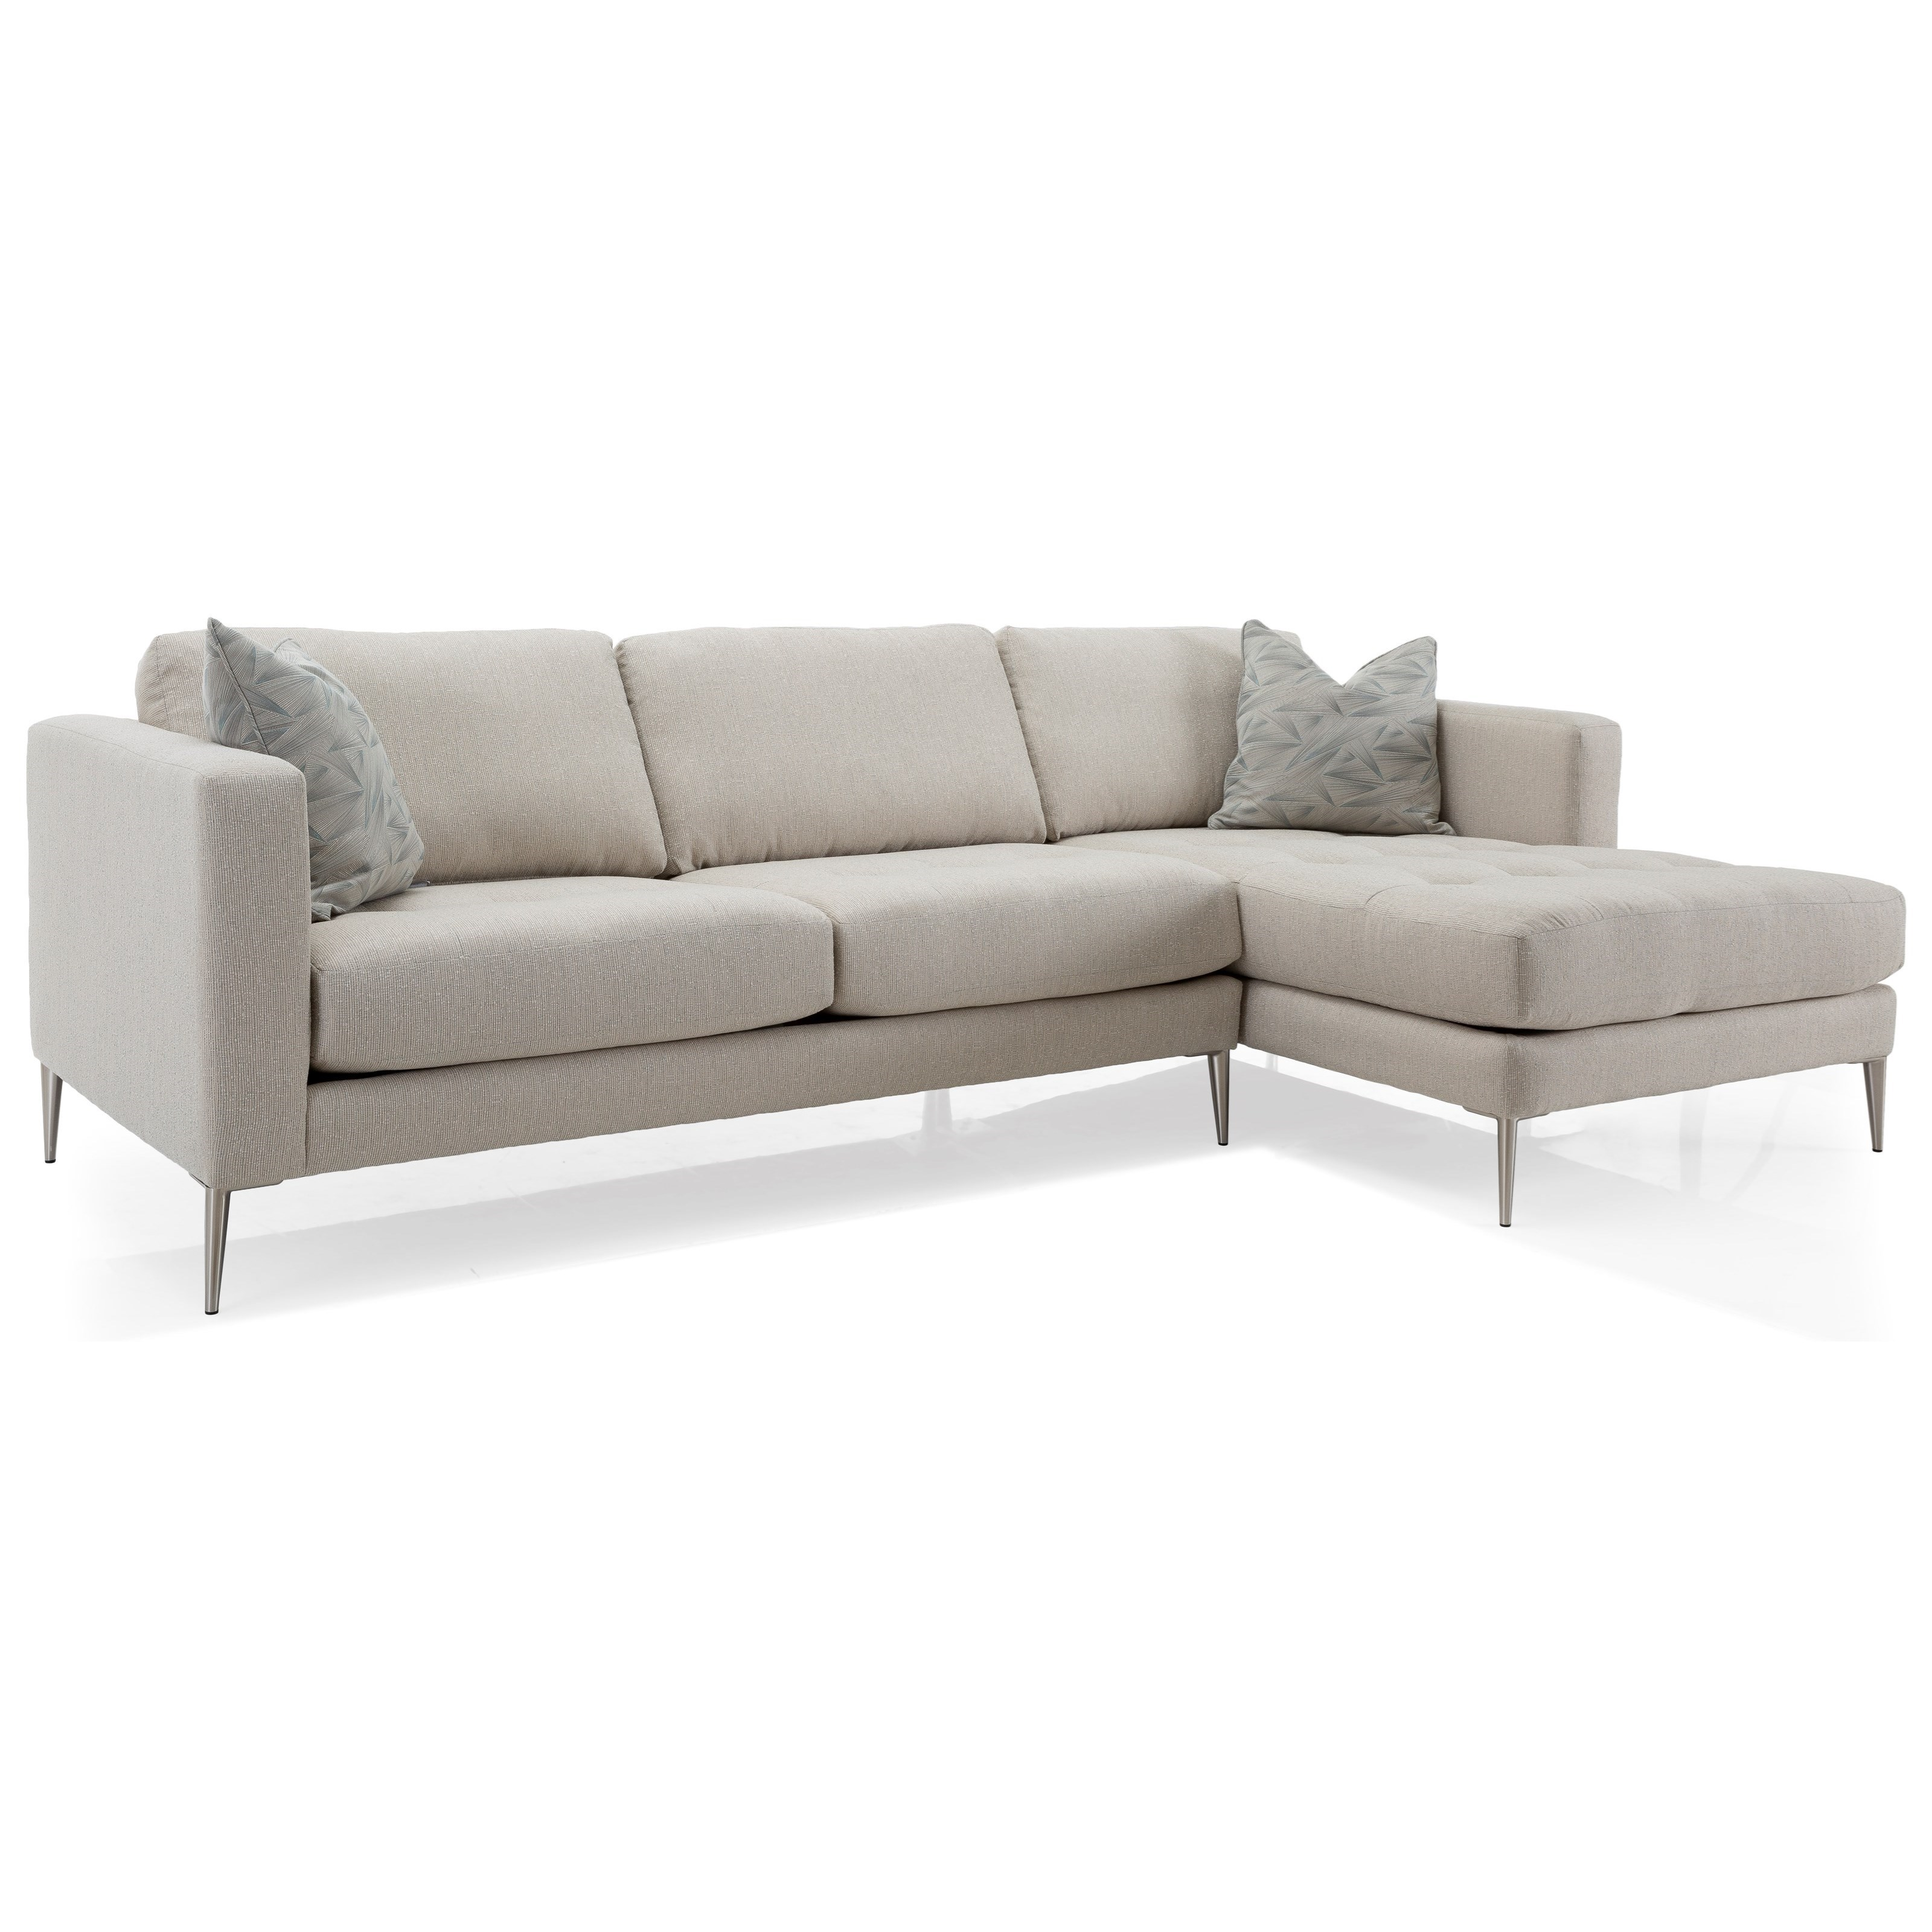 3795 Chaise Sofa by Decor-Rest at Reid's Furniture